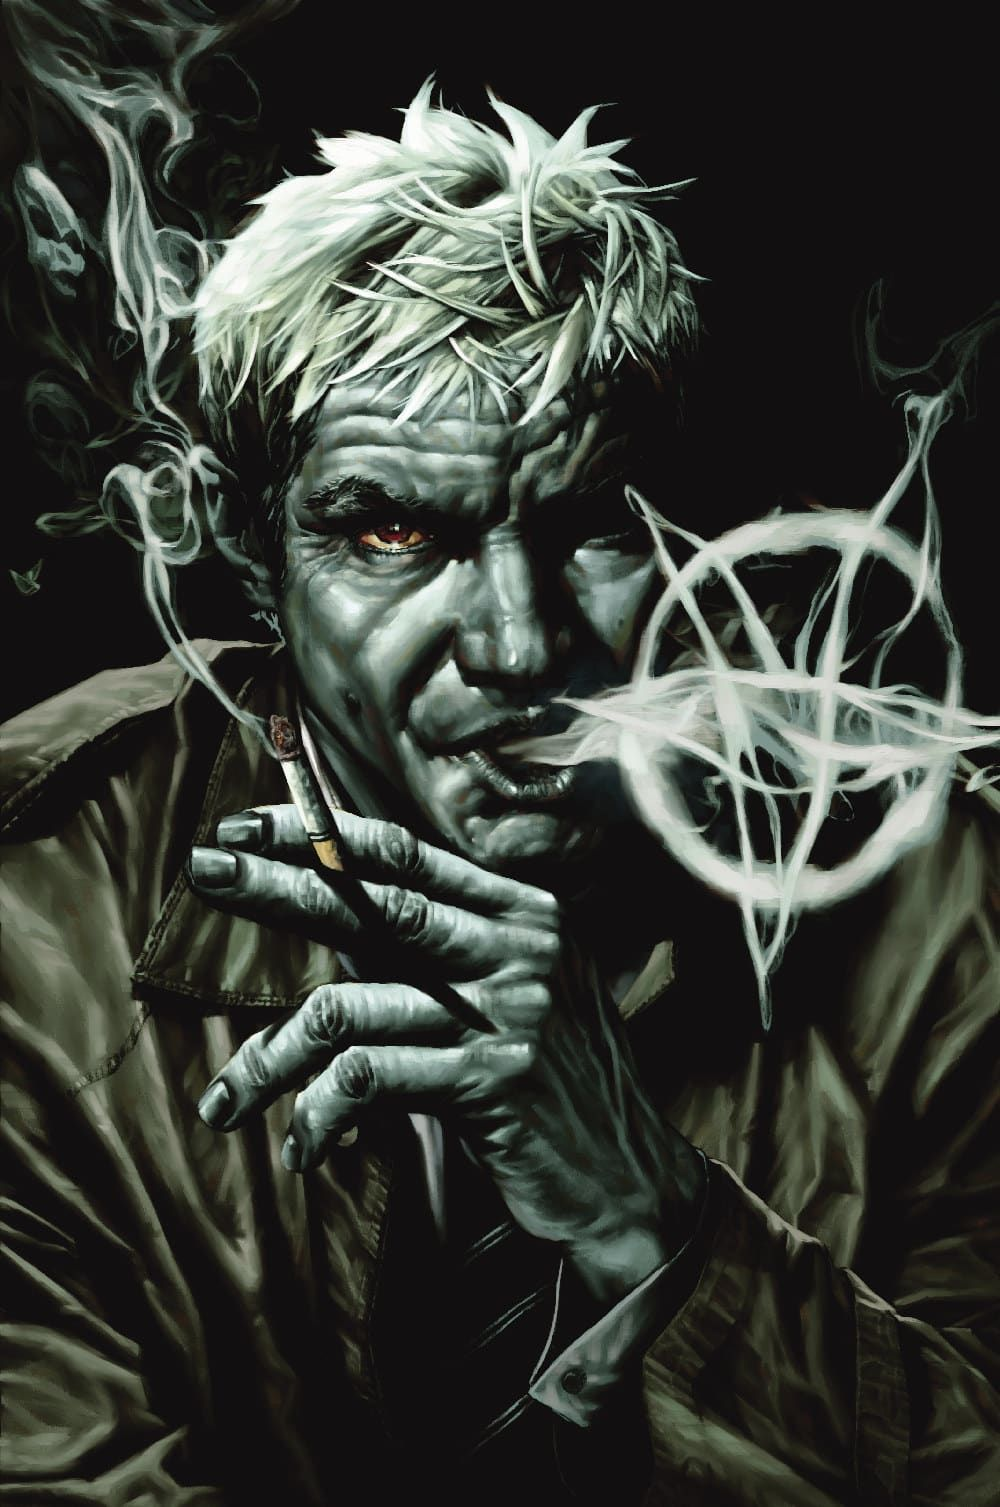 The original Constantine (in the Vertigo Comics series) is one of the few comic book characters to age in real time.